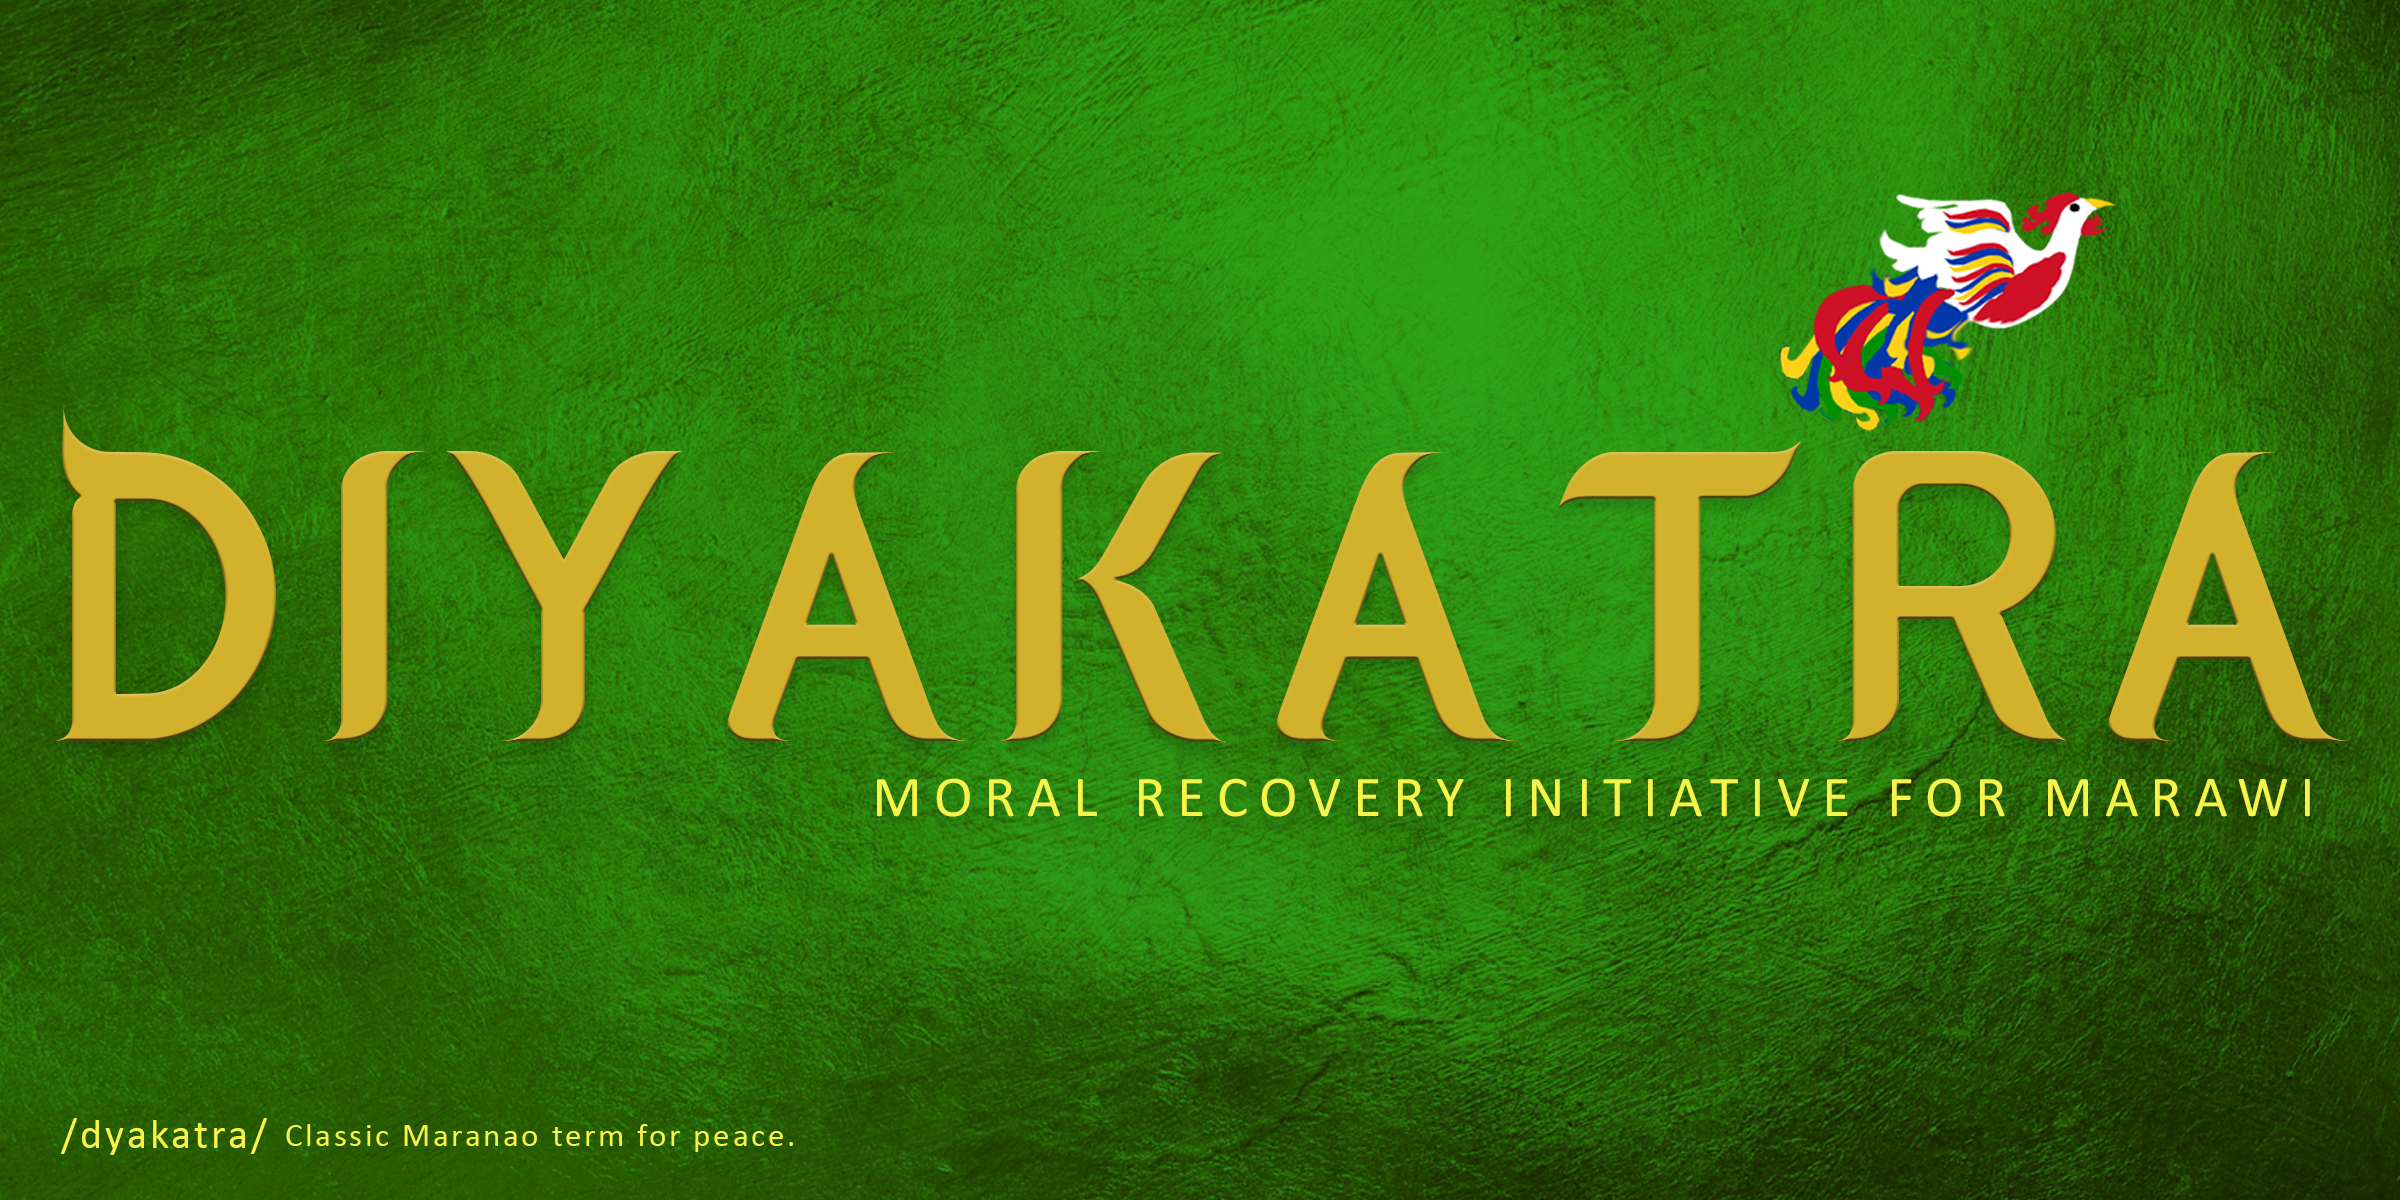 Diyakatra: Moral Recovery Initiative for Marawi